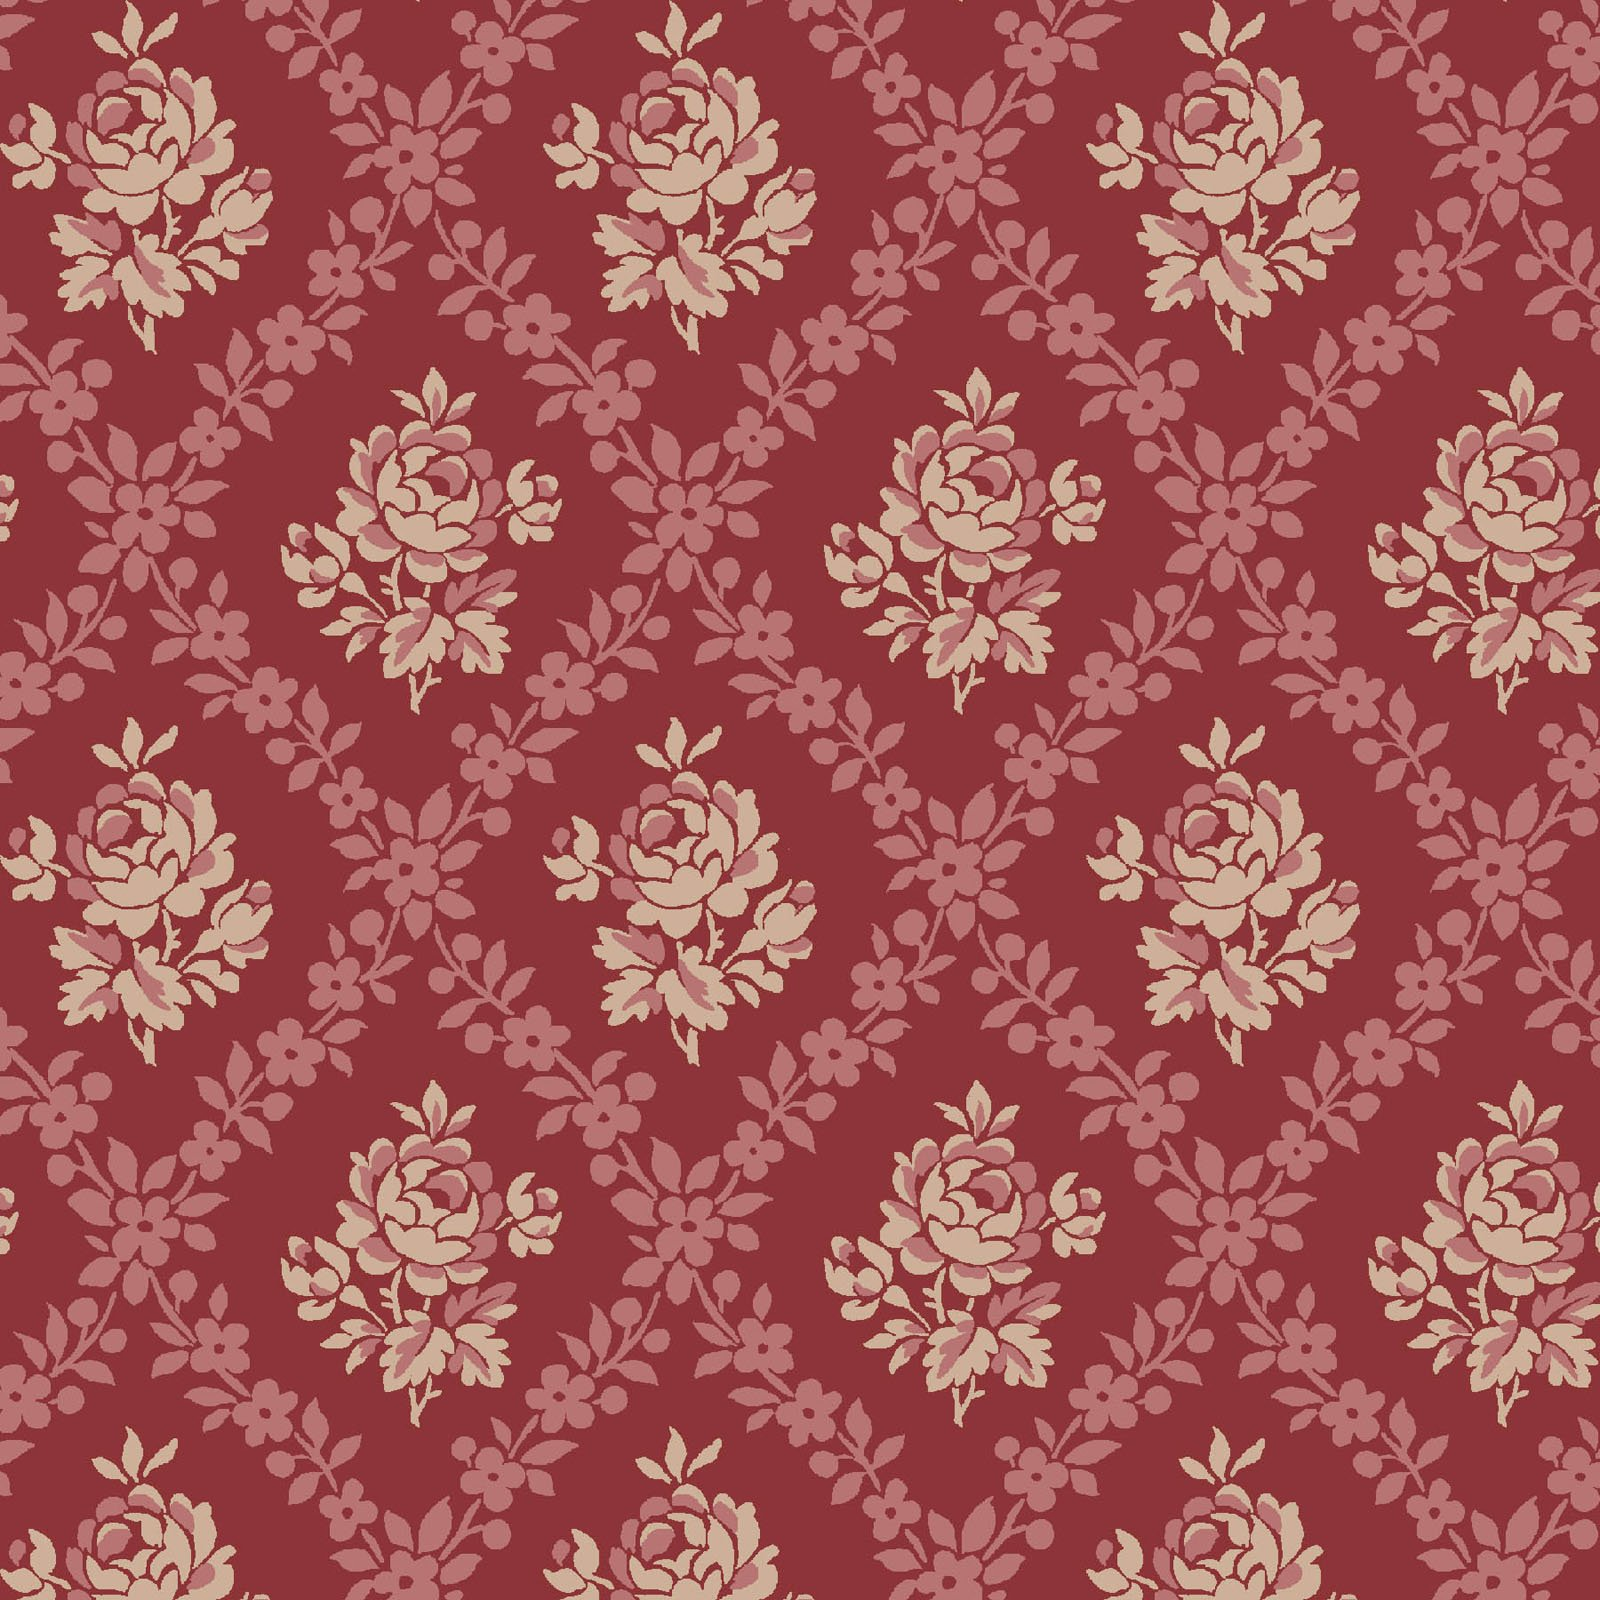 ANAS-4248 R - ANASTASIA - RED BY P&B BOUTIQUE DAMASK RED